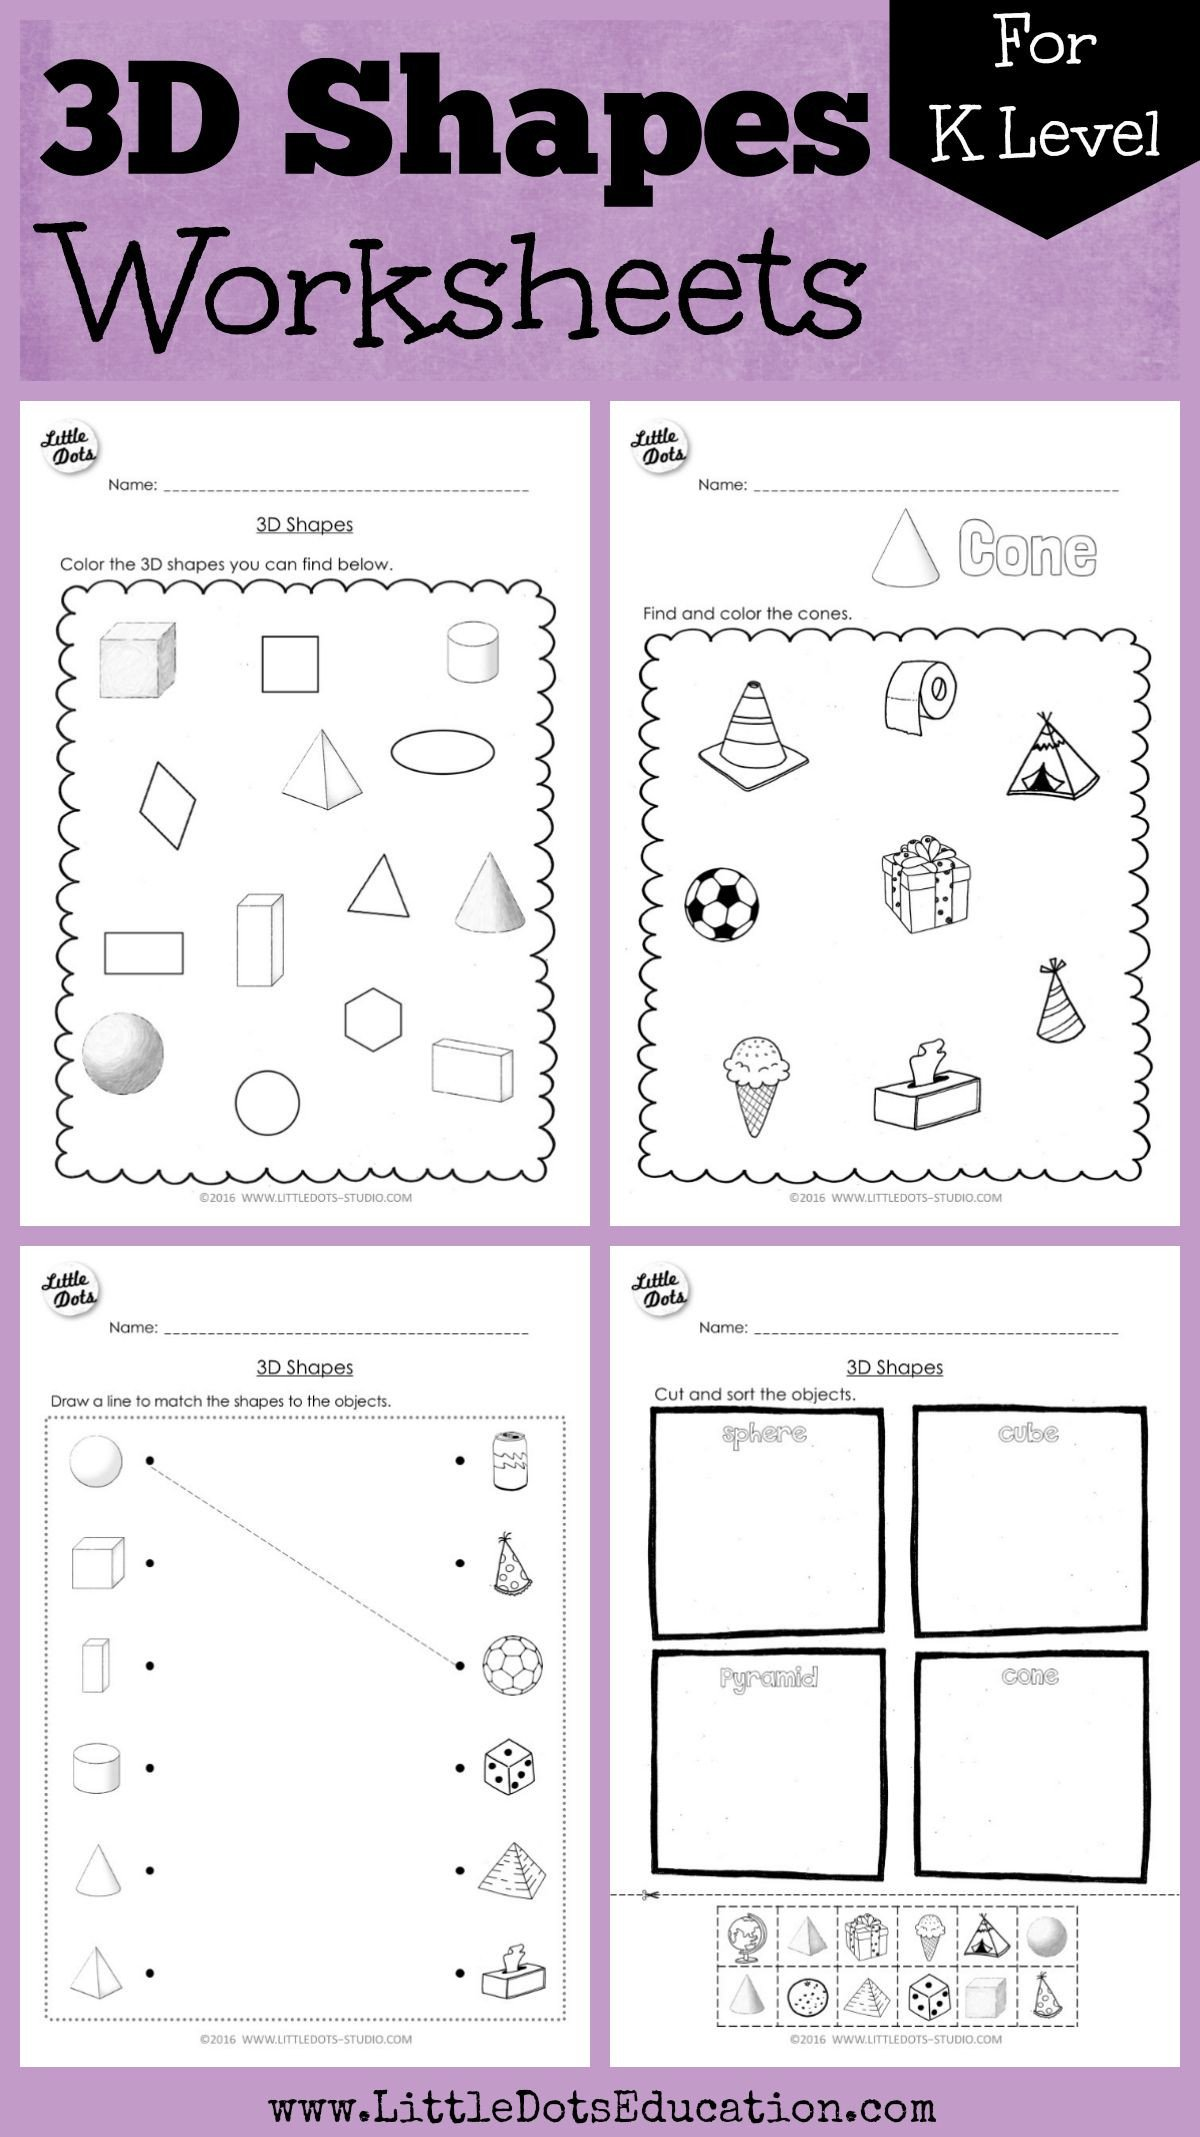 Kindergarten 3d Shape Worksheets Kindergarten Math 3d Shapes Worksheets and Activities